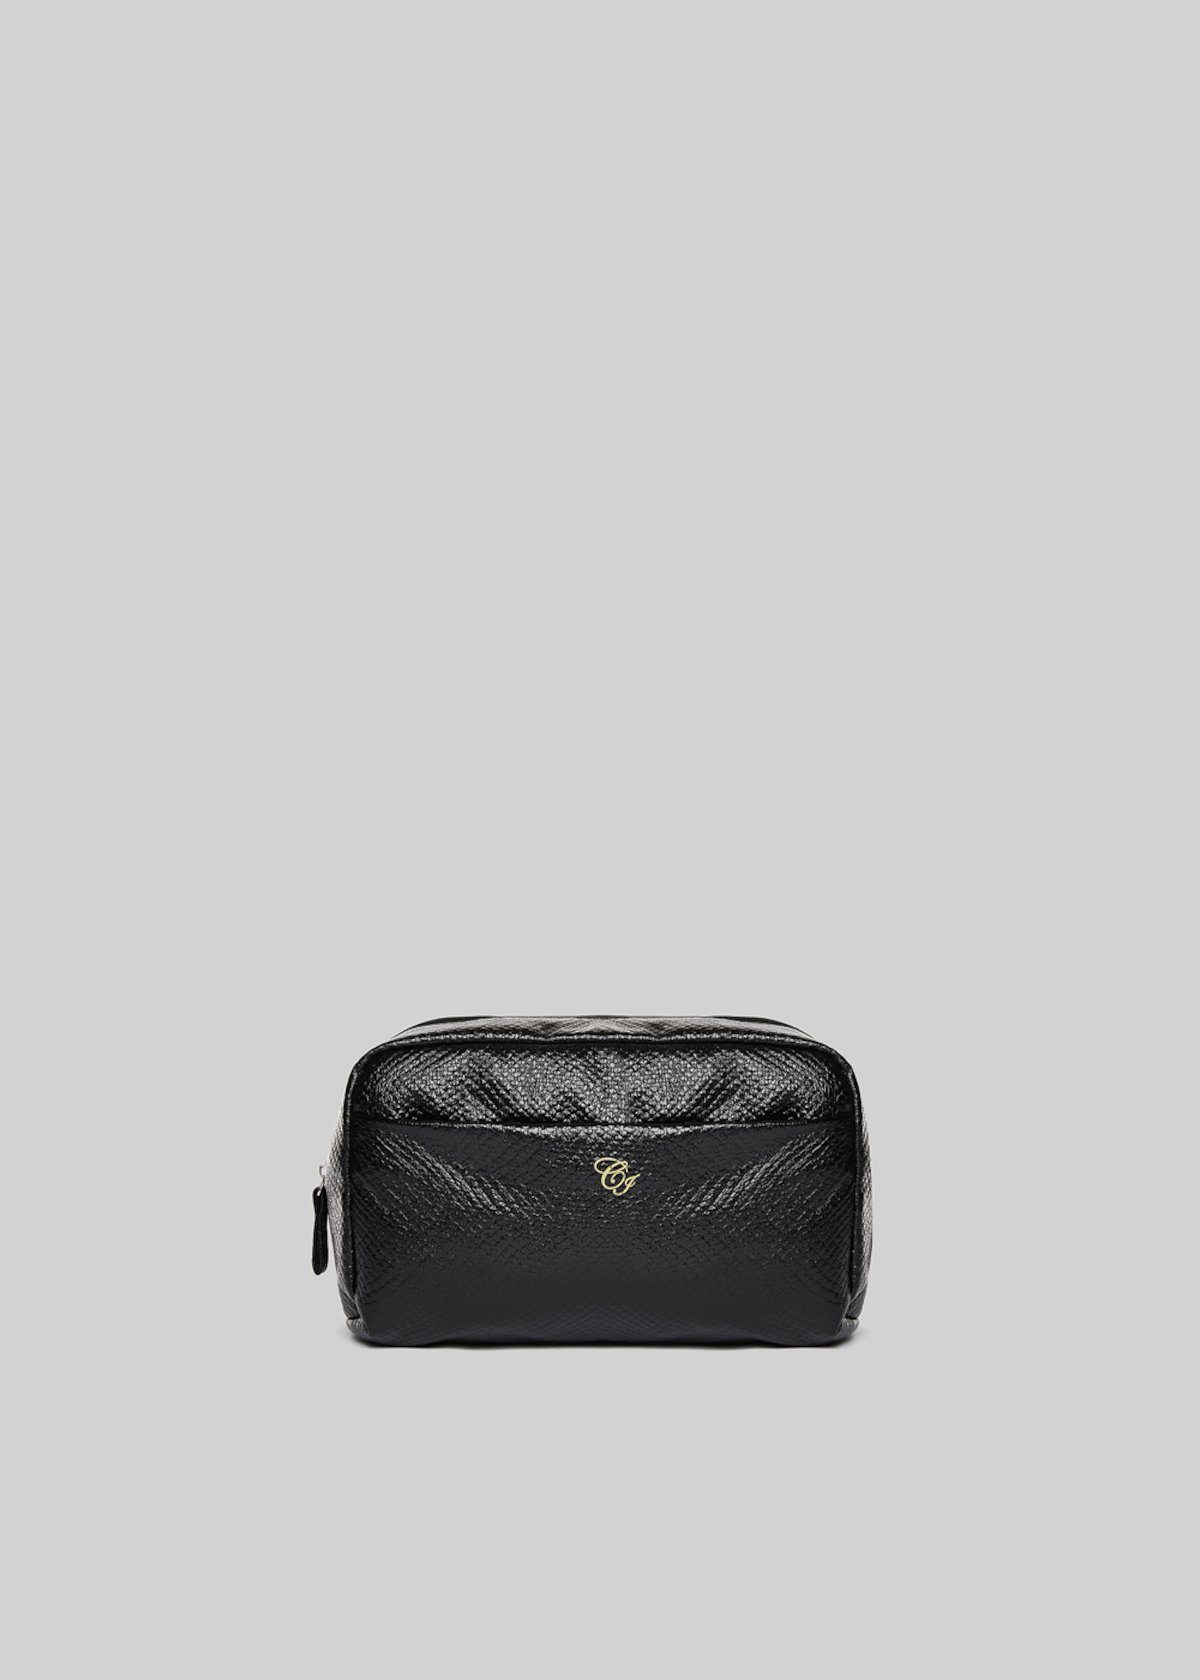 Faux leather Brinkly beauty case and CI logo printed